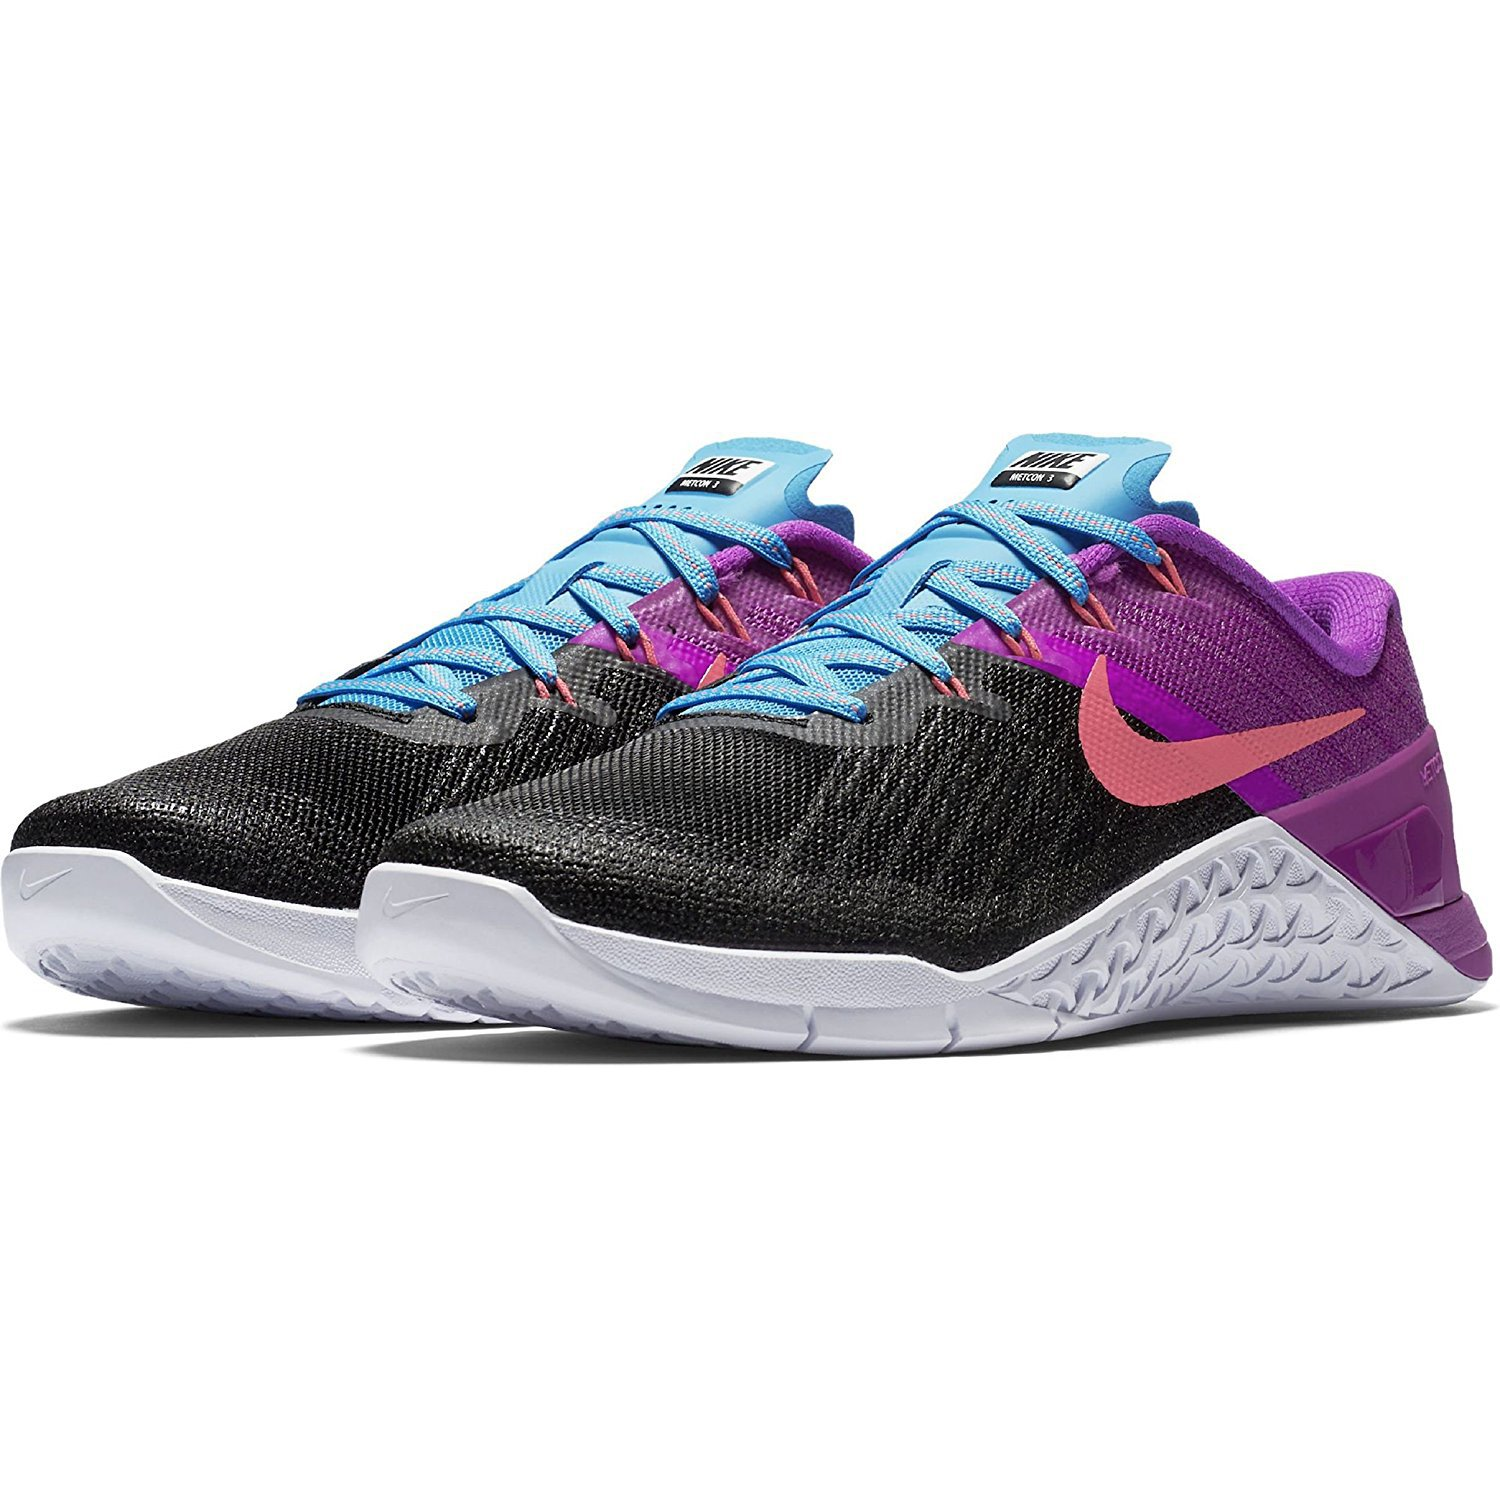 Nike Women's Metcon 3 Training Shoes Black / Racer Pink - Hyper Violet 849807-002 (7) by NIKE (Image #5)